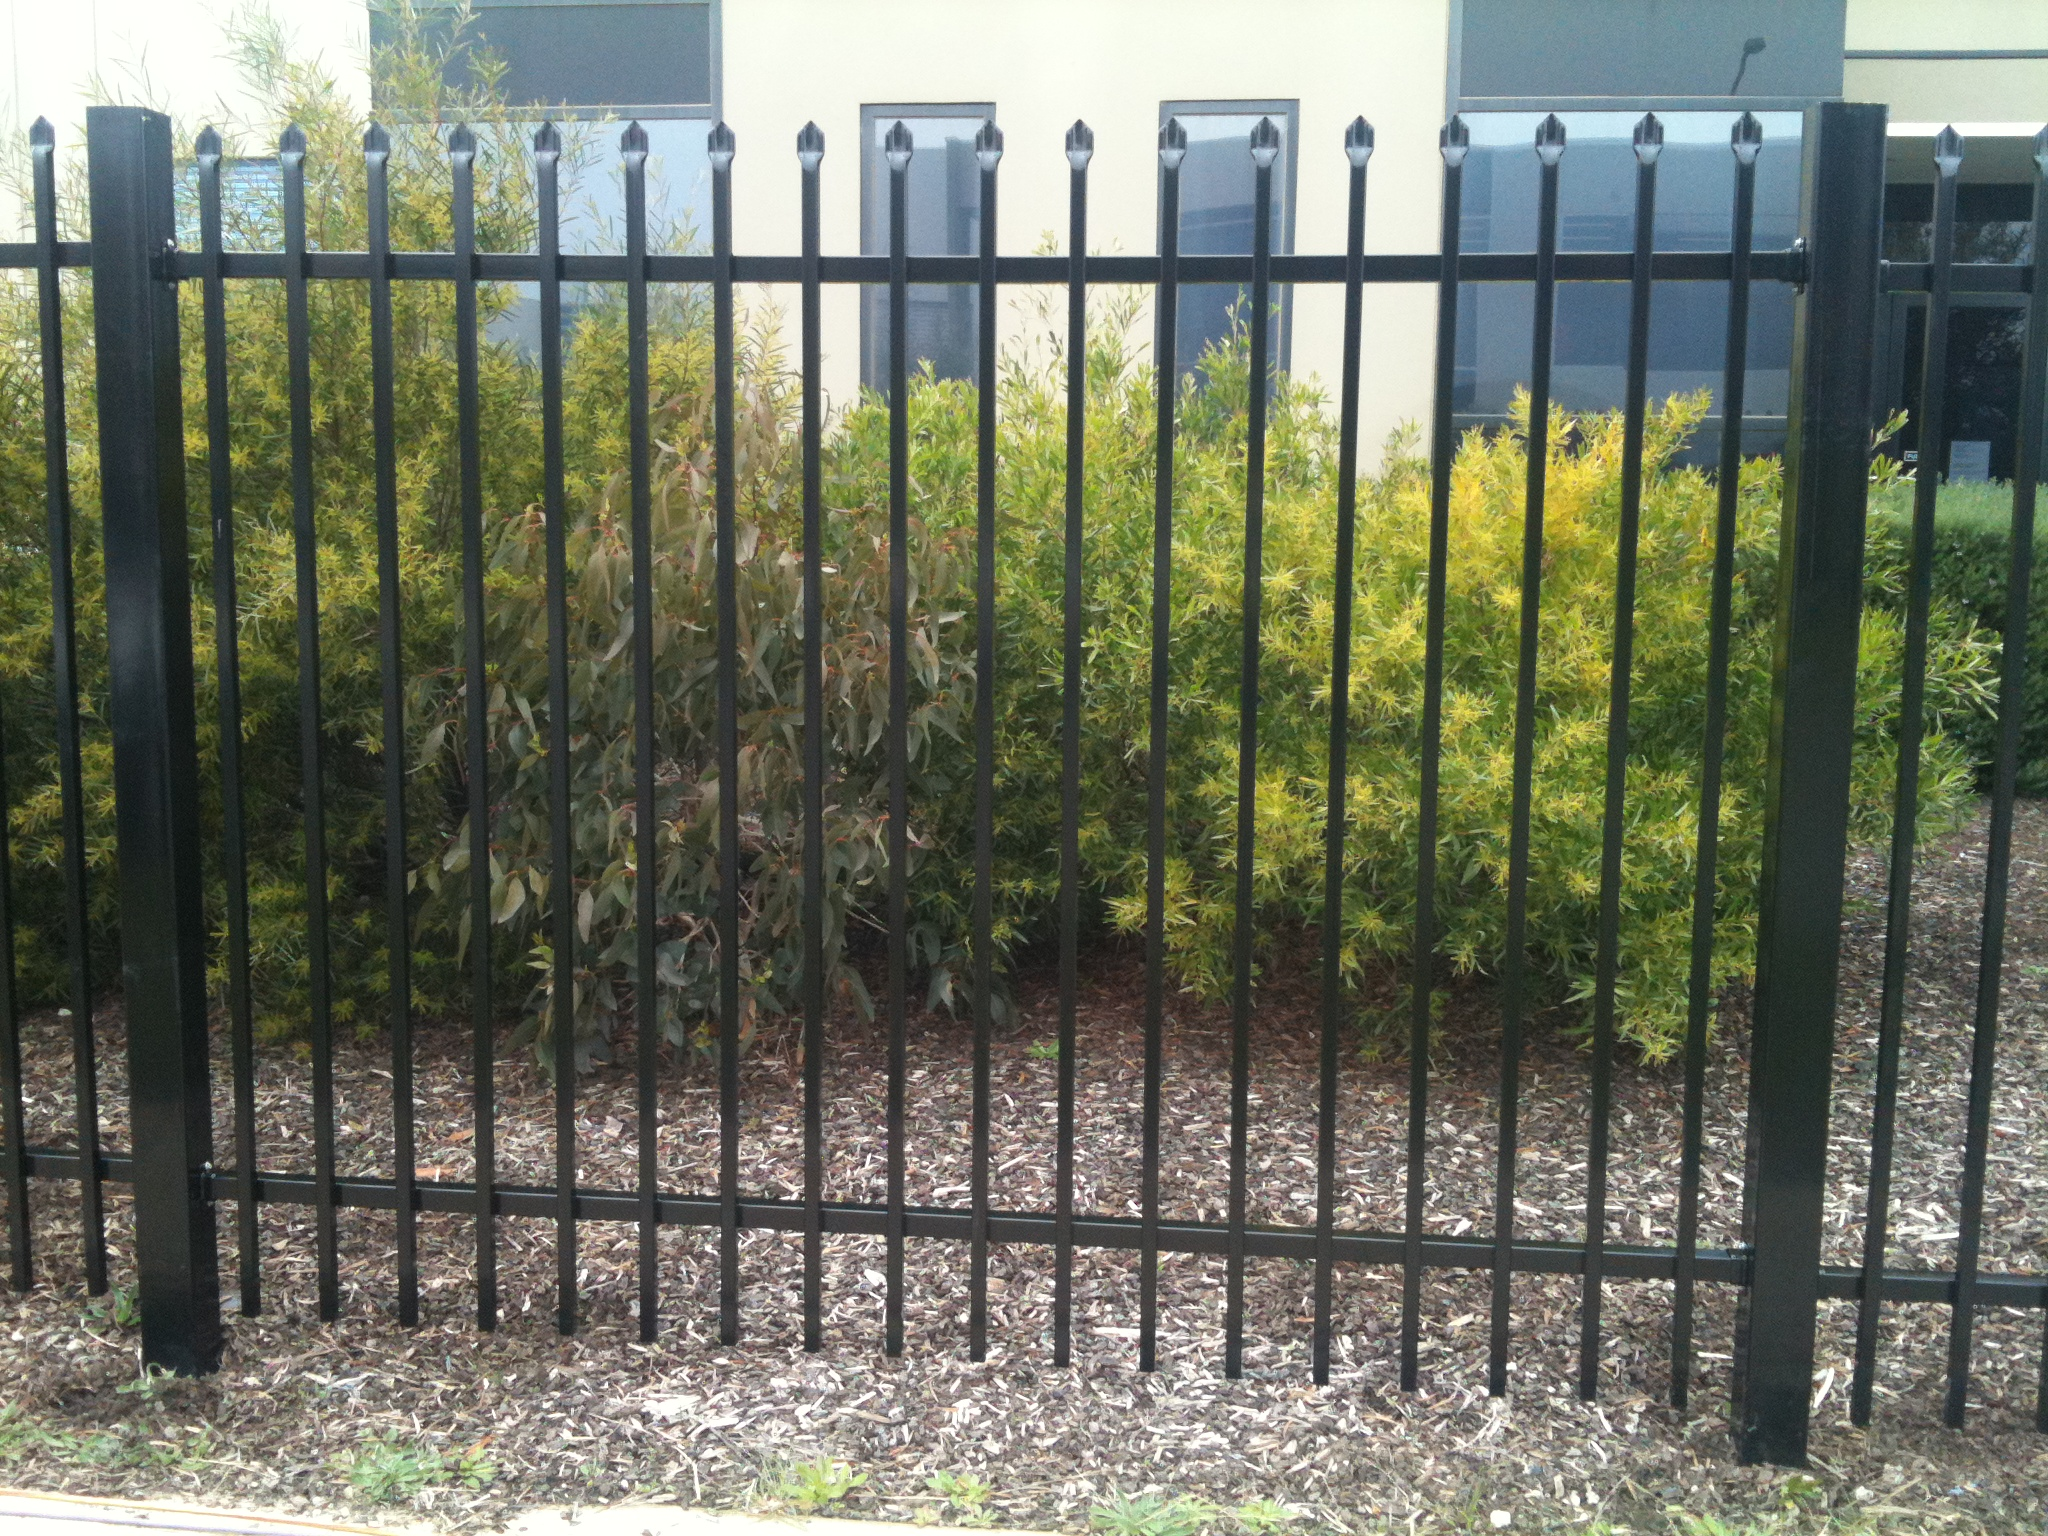 Pressed spear top security fencing